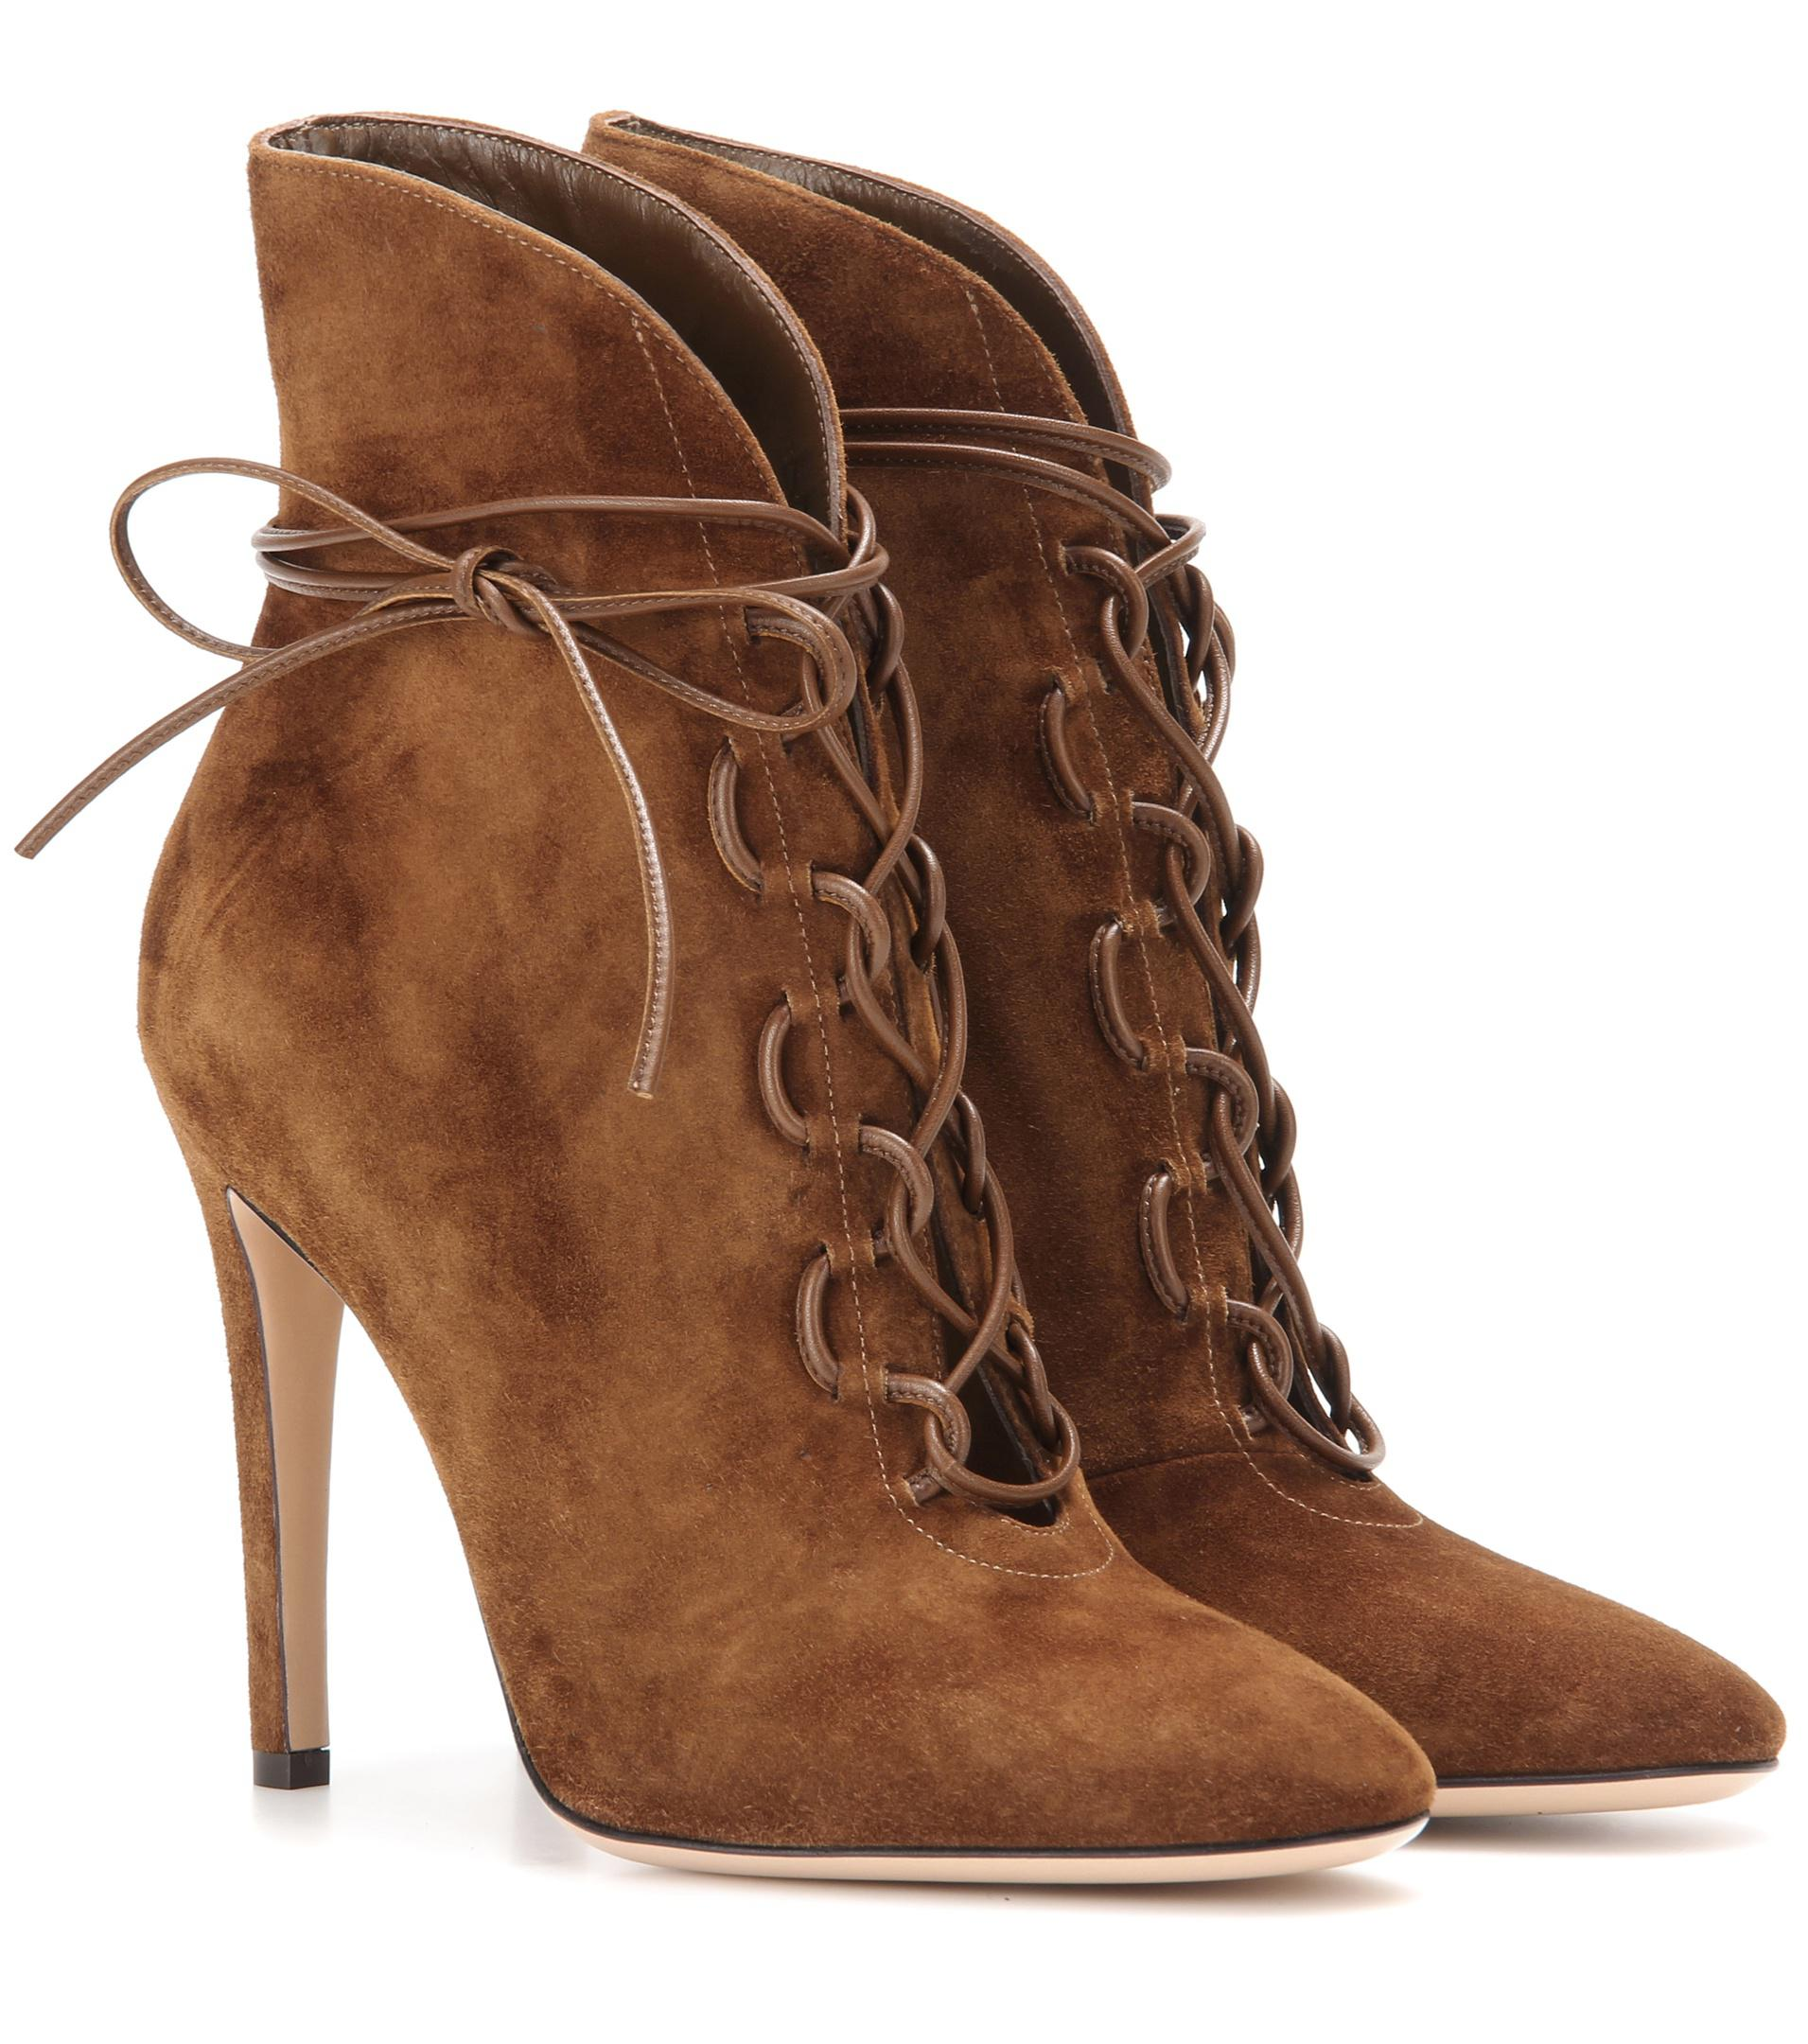 Gianvito Rossi Martis 20 suede ankle boots oVJhGmQ